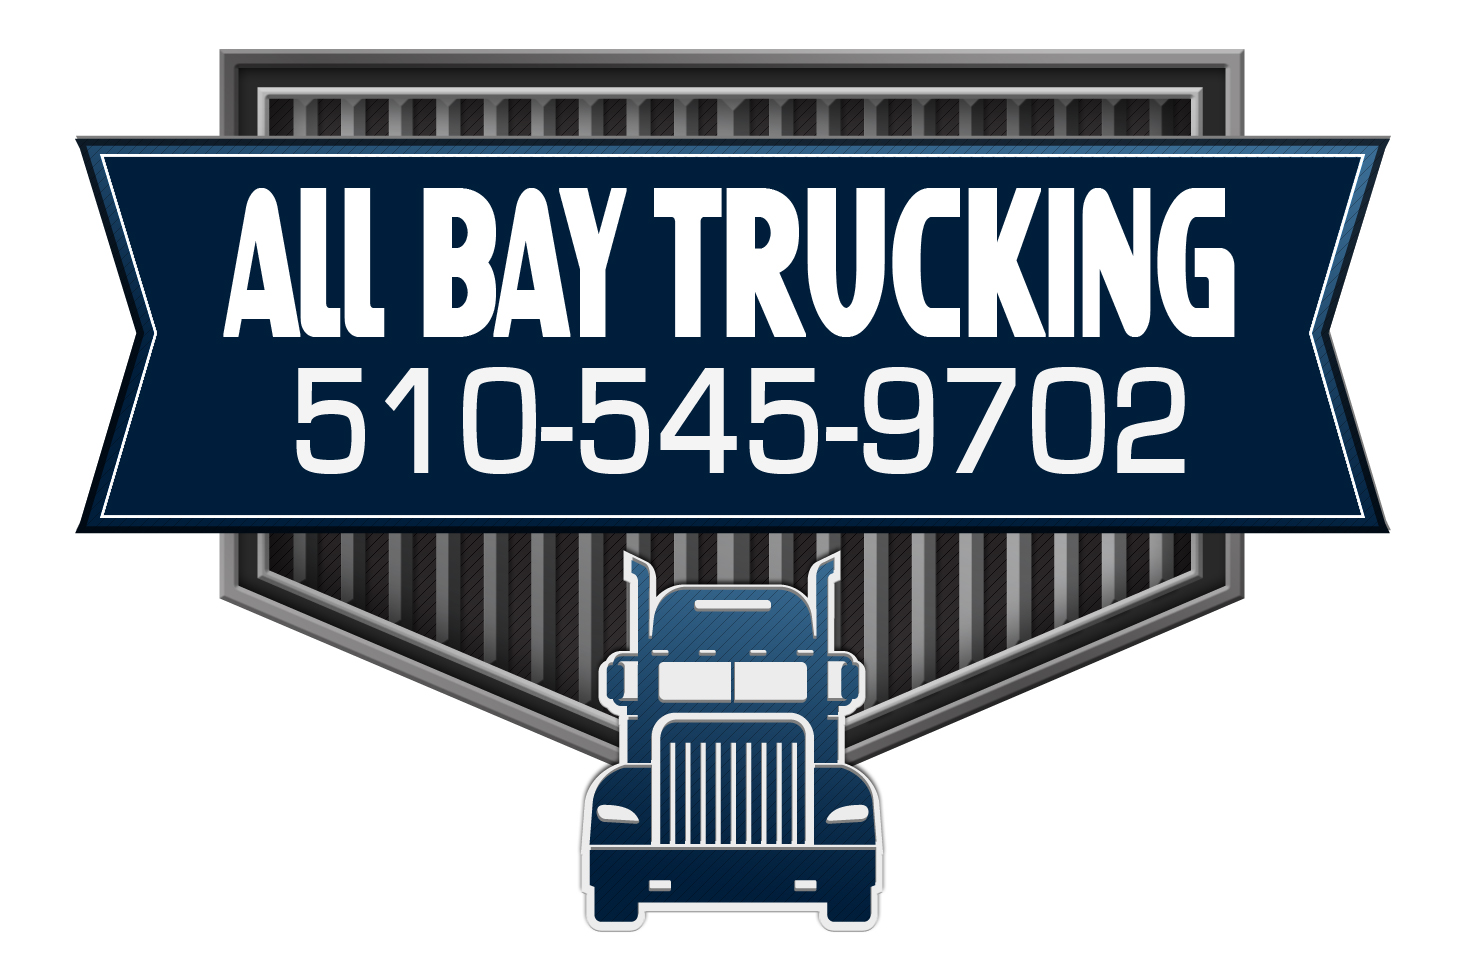 All Bay Trucking, Oakland, CA logo